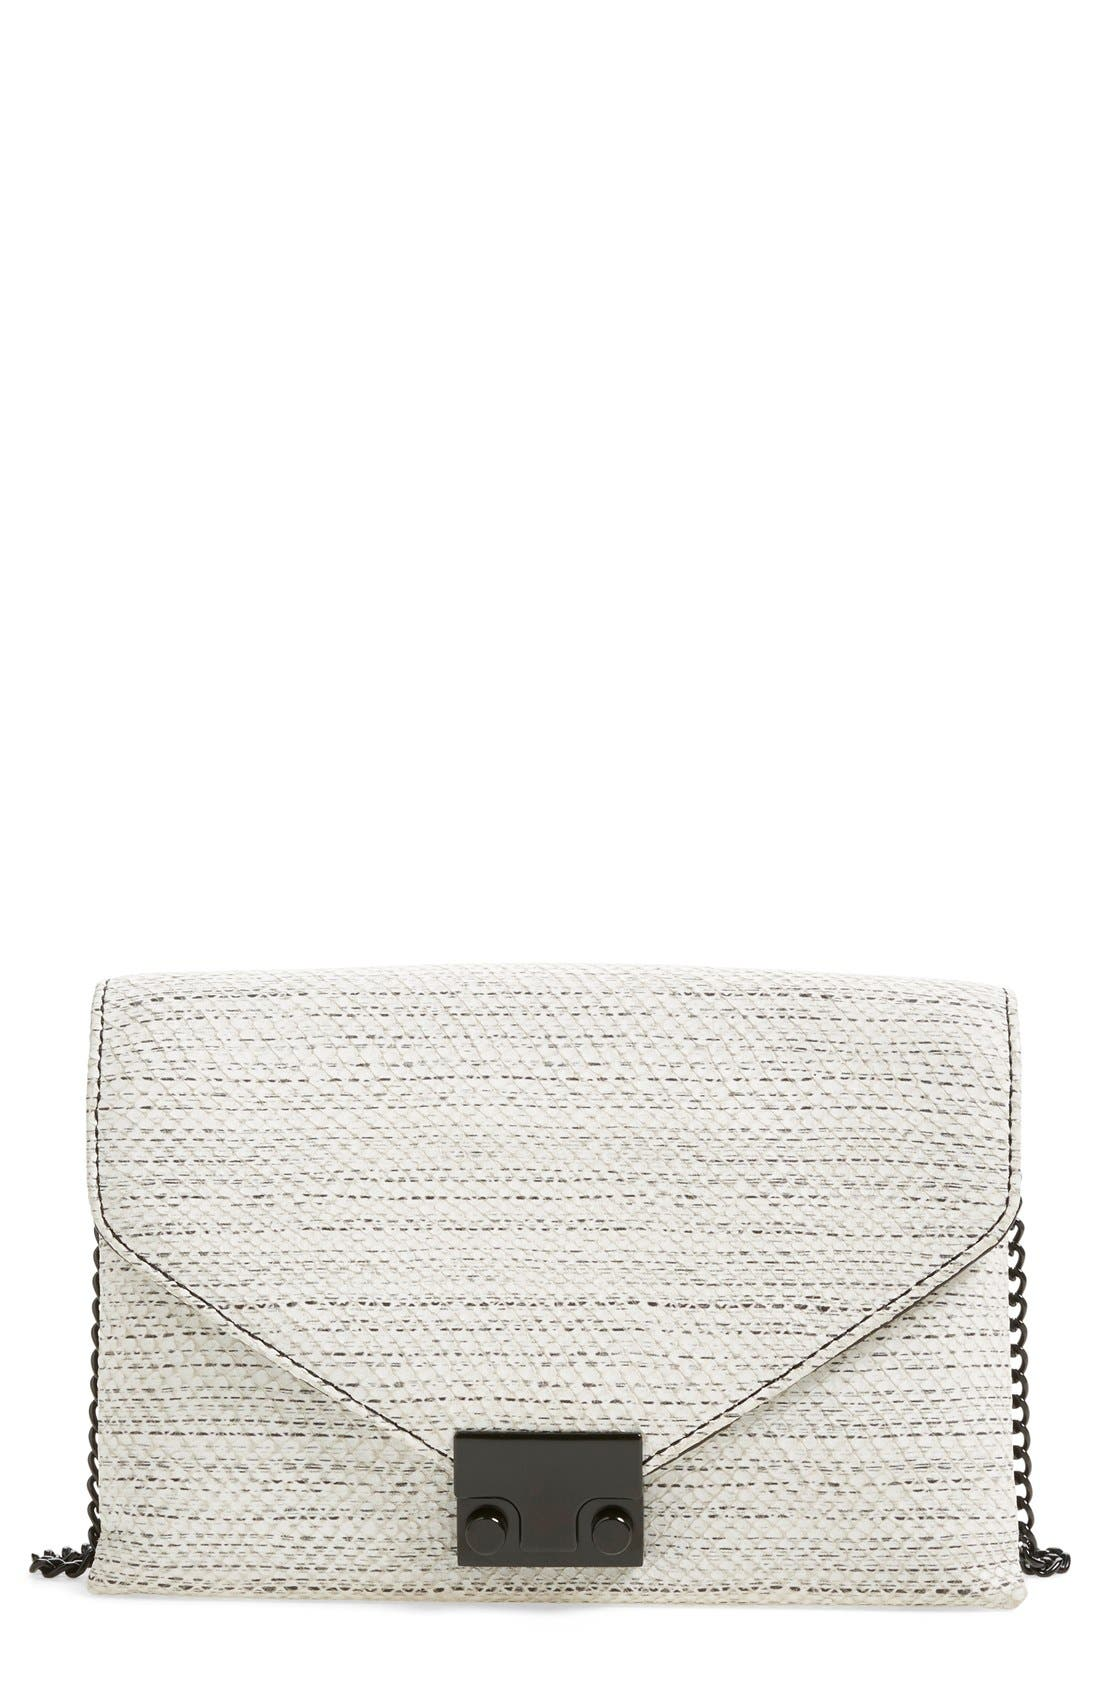 Main Image - Loeffler Randall 'Junior Lock' Leather Envelope Clutch